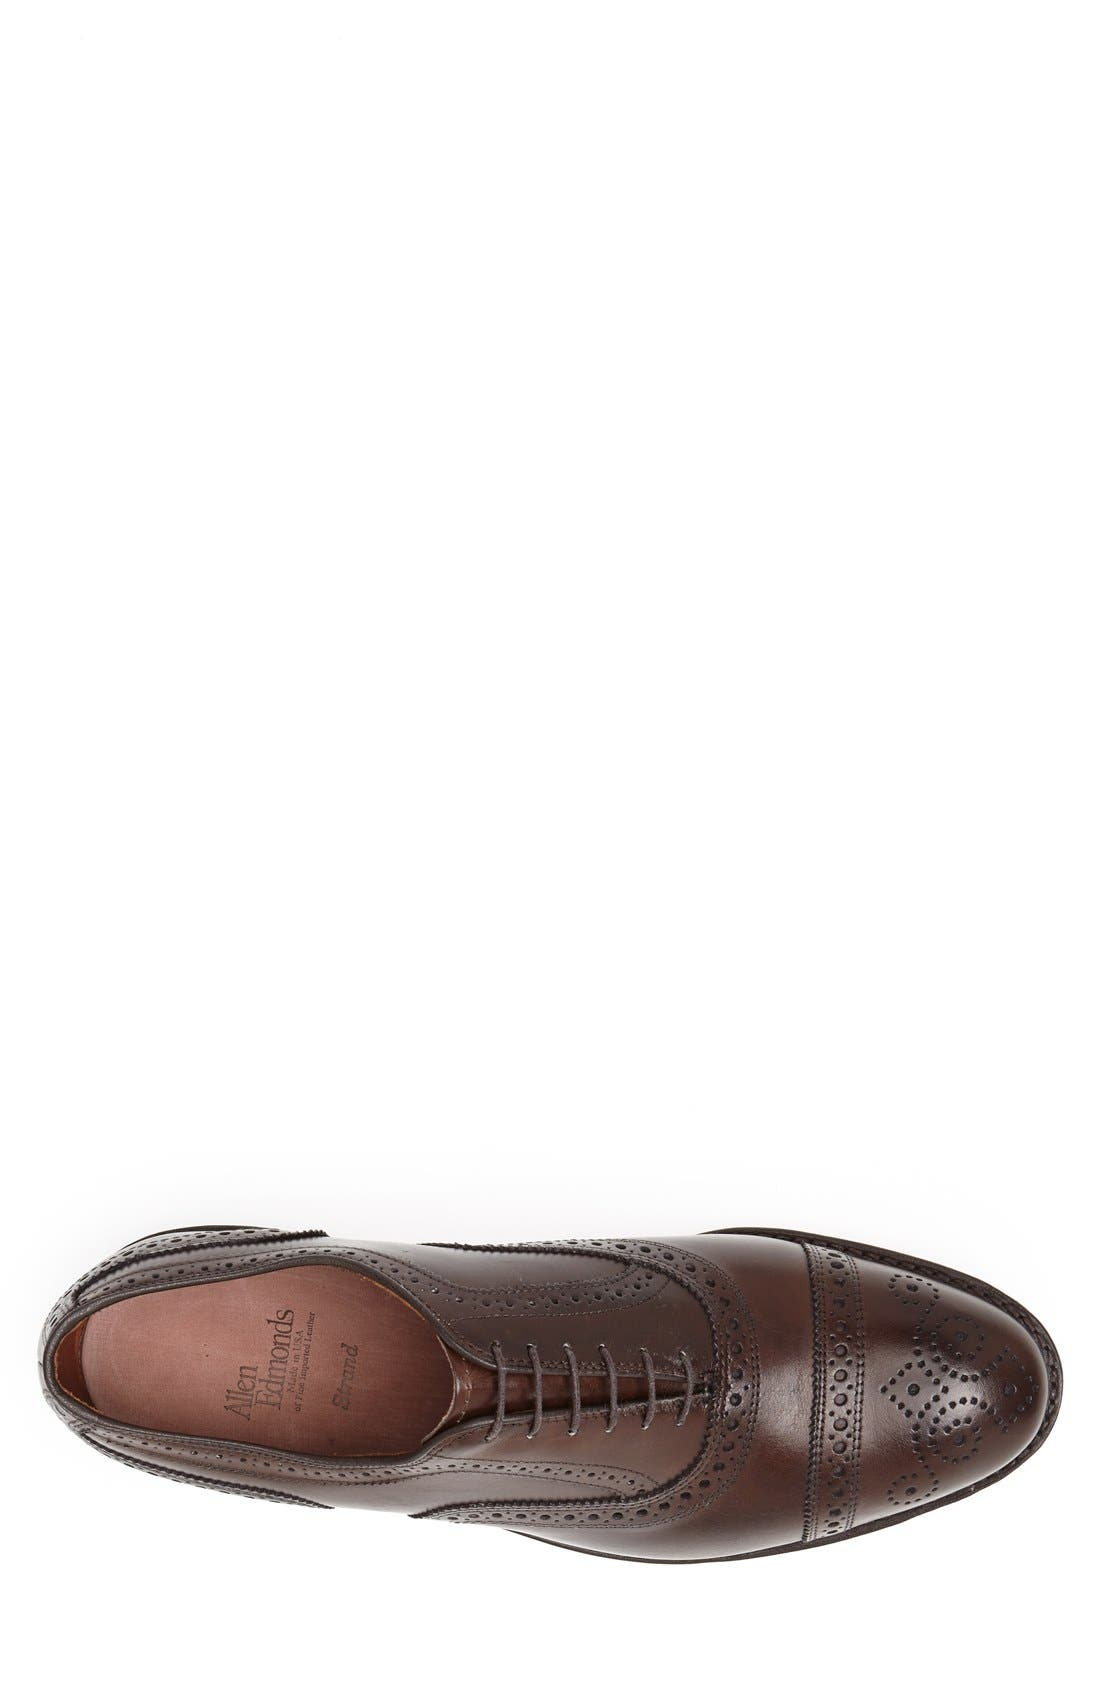 'Strand' Cap Toe Oxford,                             Alternate thumbnail 4, color,                             BROWN BURNISHED CALF